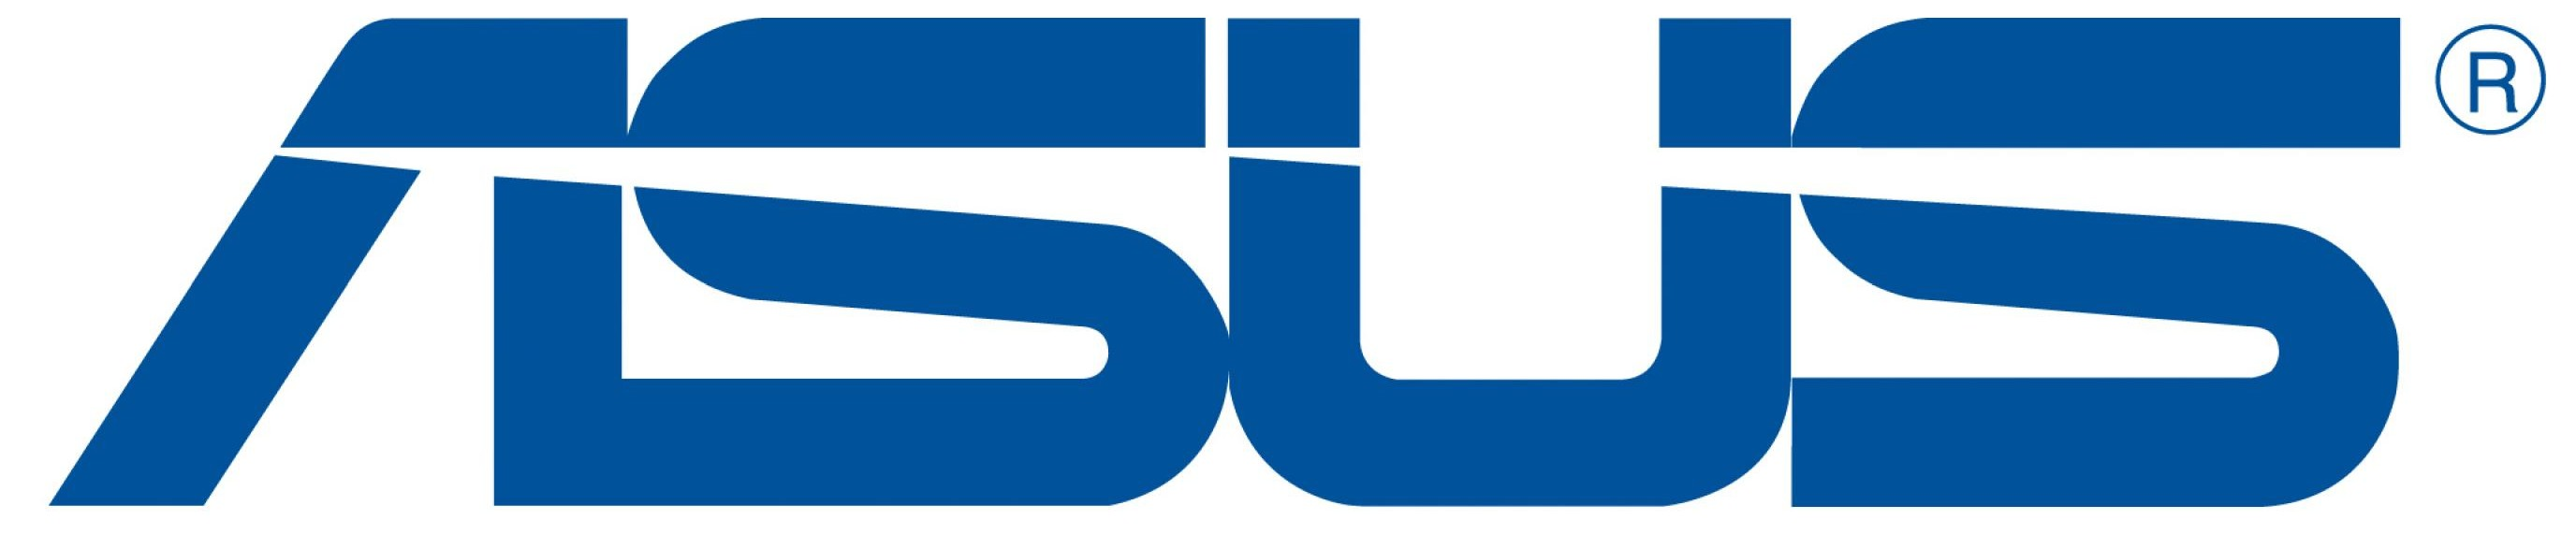 ASUS is a leading company driven by innovation and commitment to quality for products that include notebooks